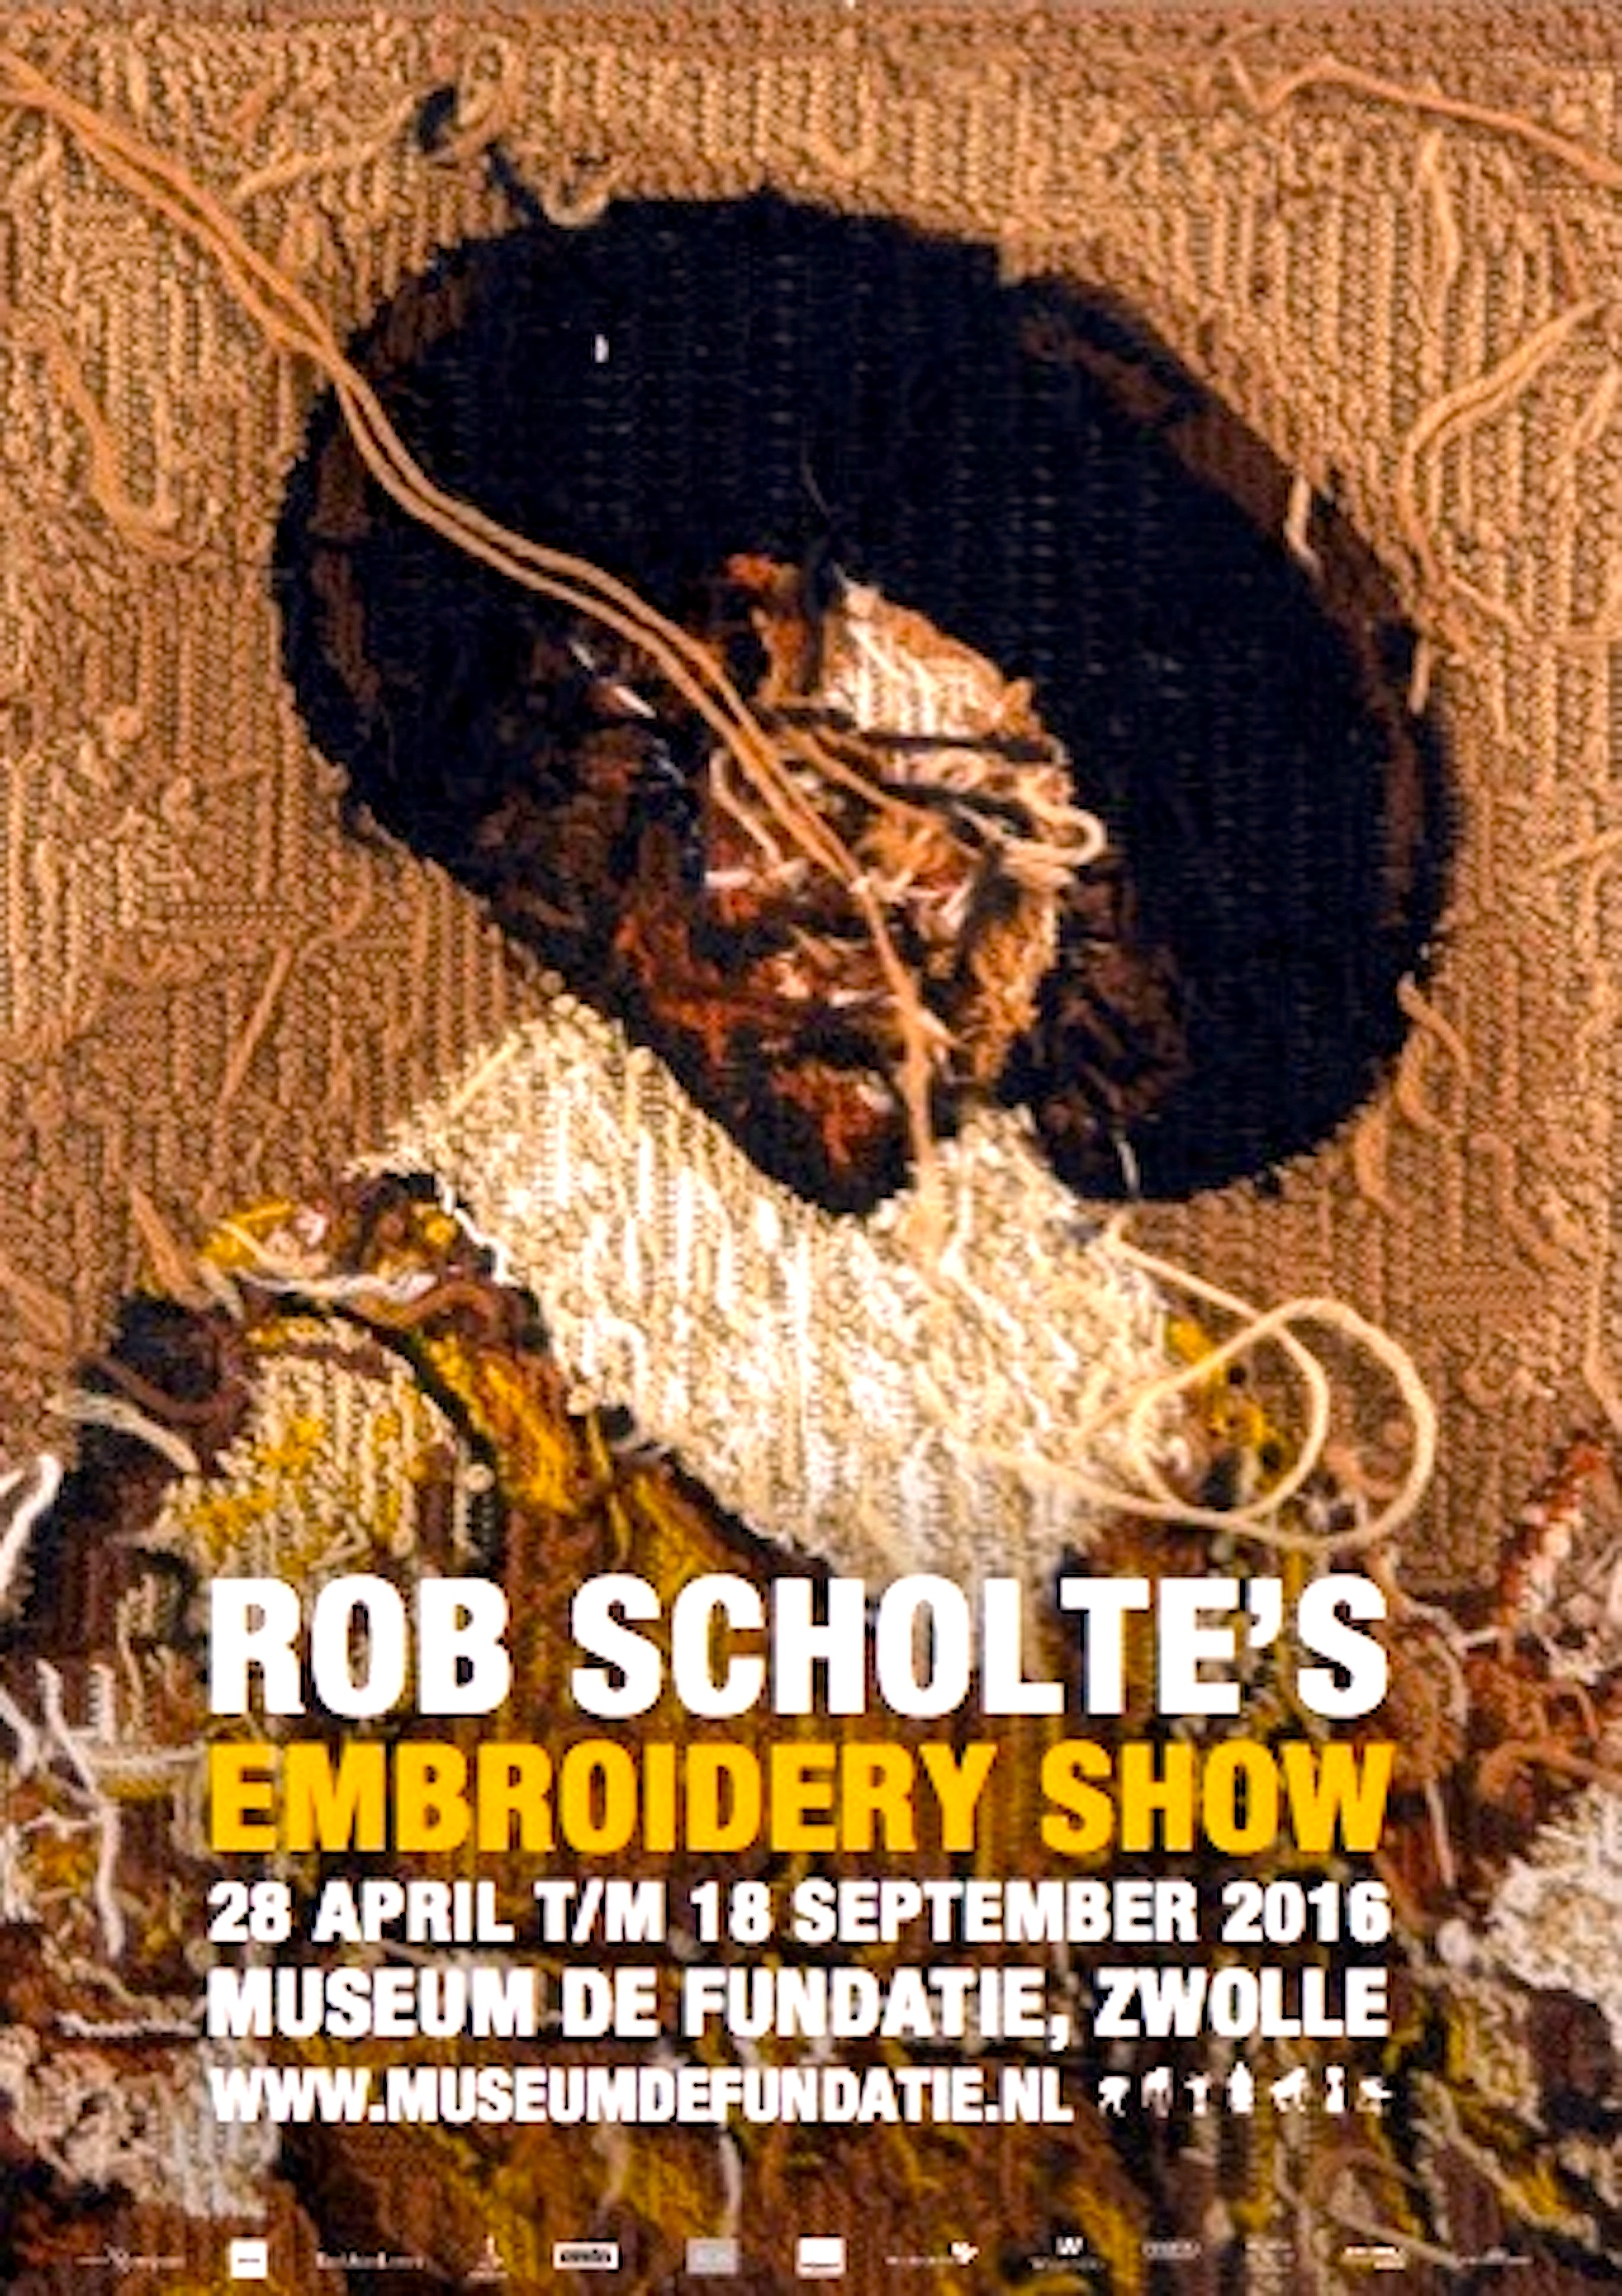 Rob Scholte,s Embroidery Show